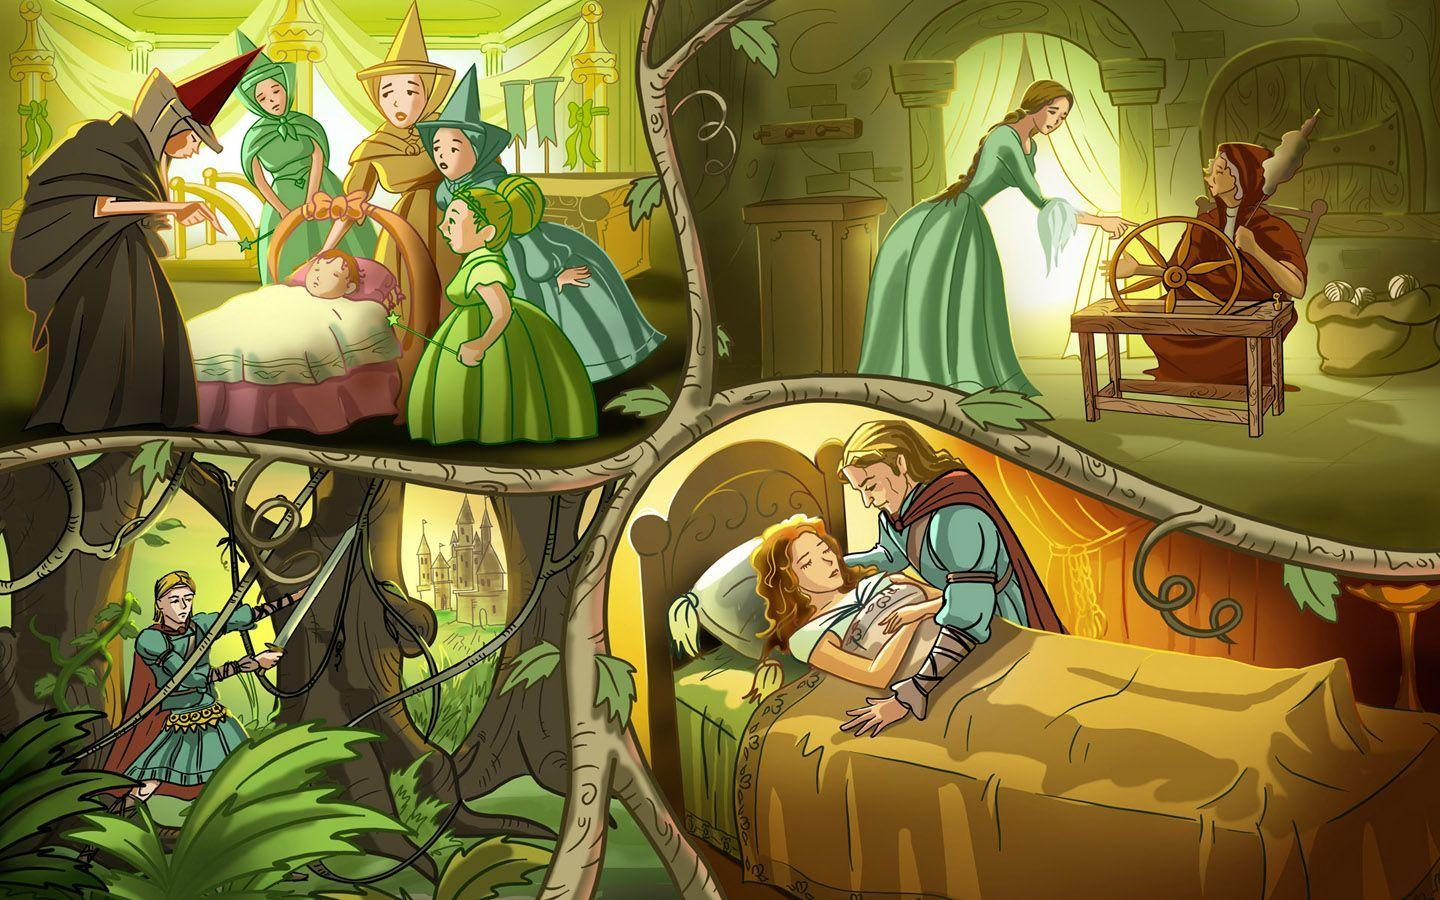 princesses in fairy tales essay Fairy tales have been part of children's culture for many years they have been the favorite bed time stories and the doors to an alternate world of imagination to some, fairy tales have been the key educational tool to teach children the values of life to others they are parallel to our real lives and [.